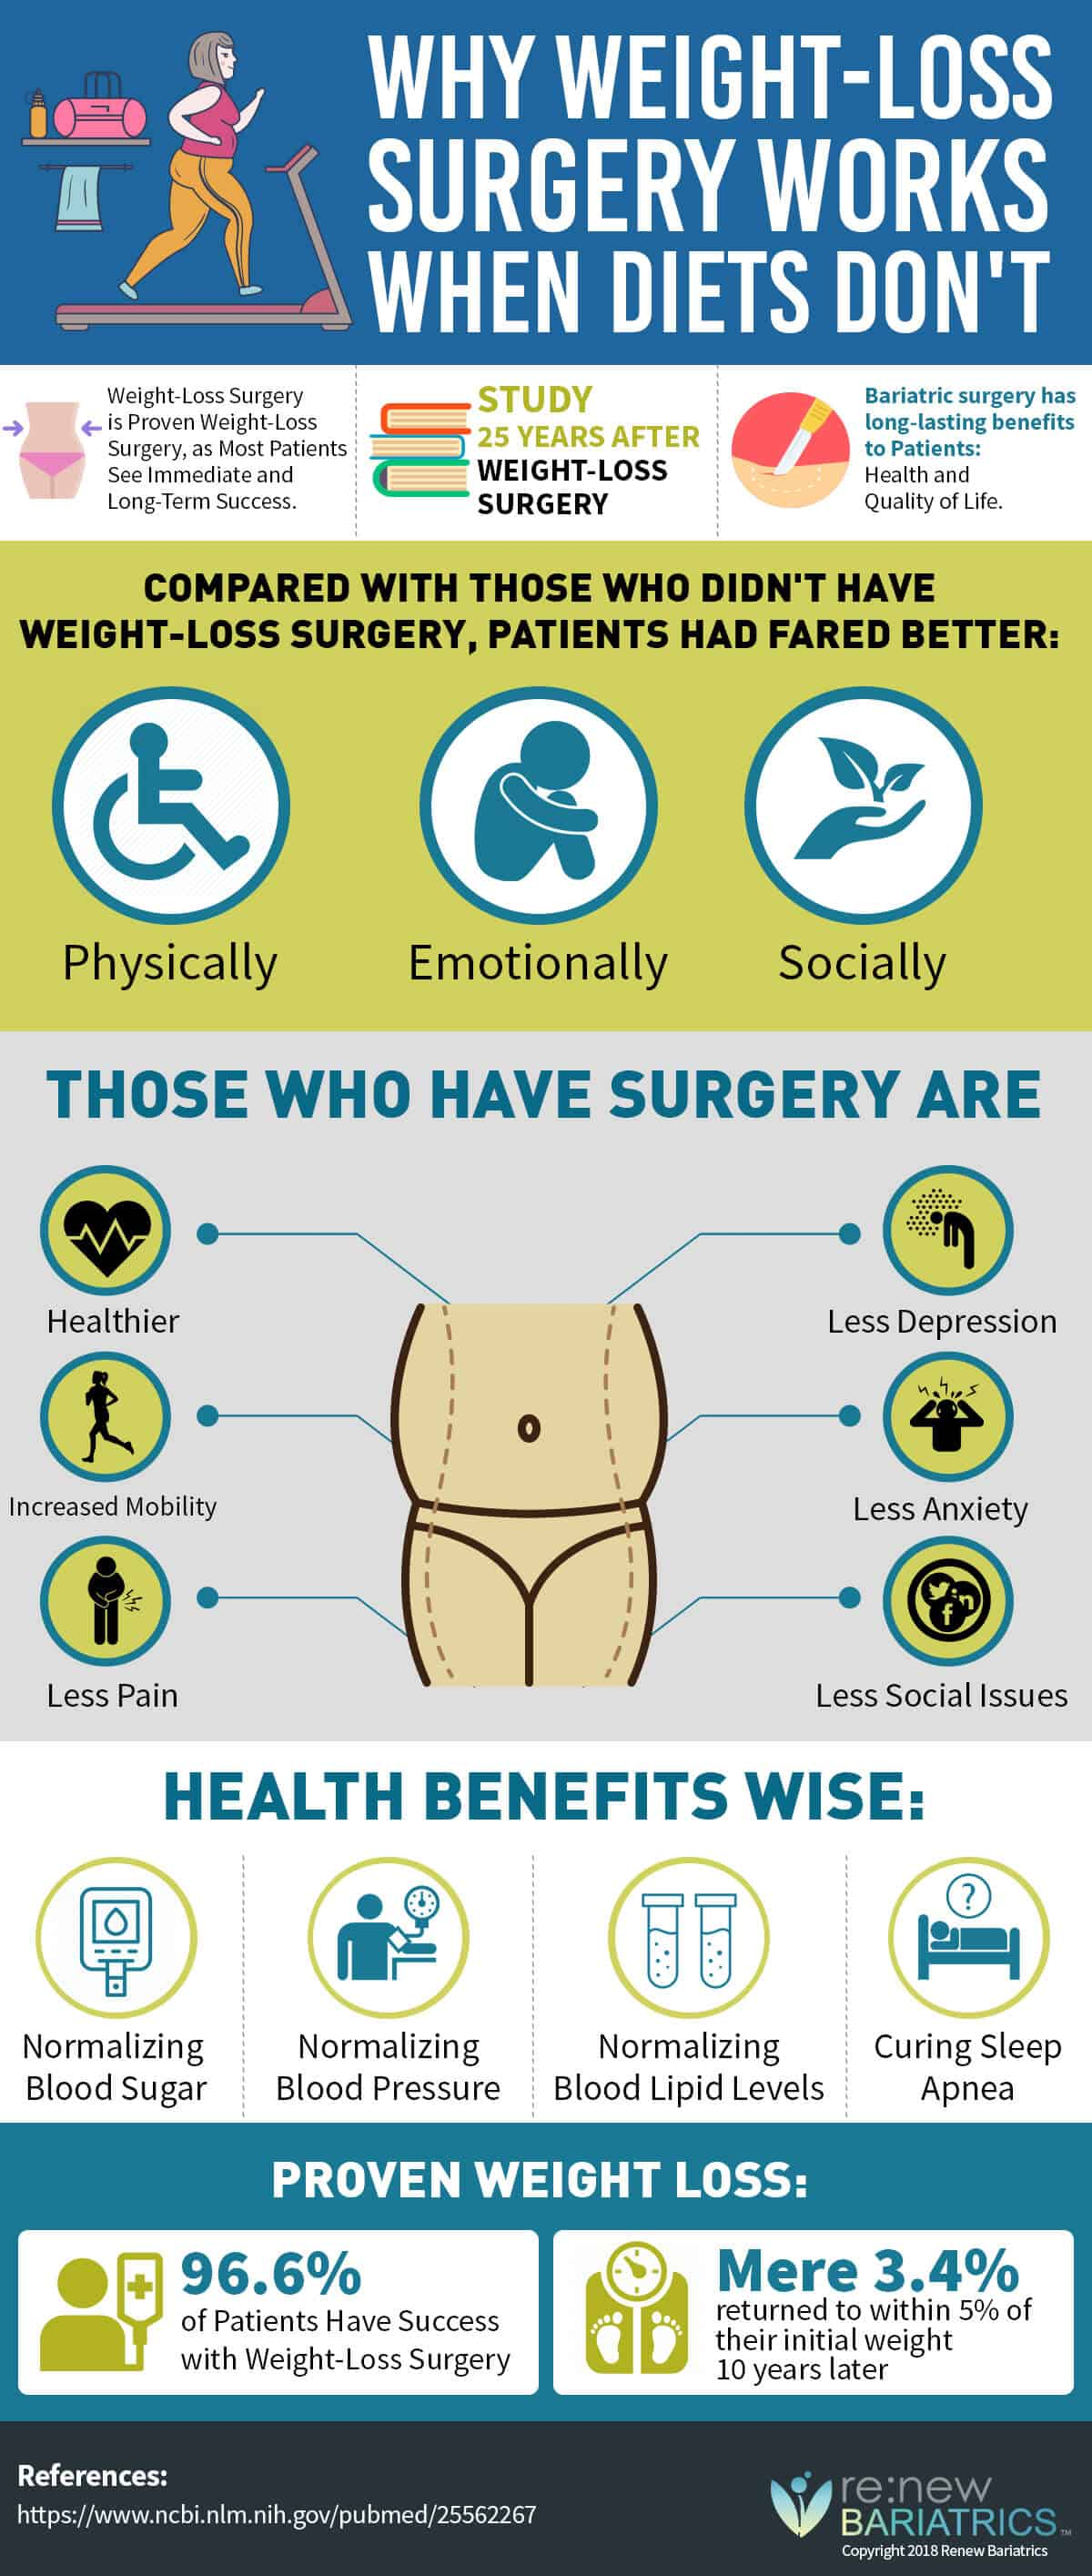 Why Bariatric Surgery Works